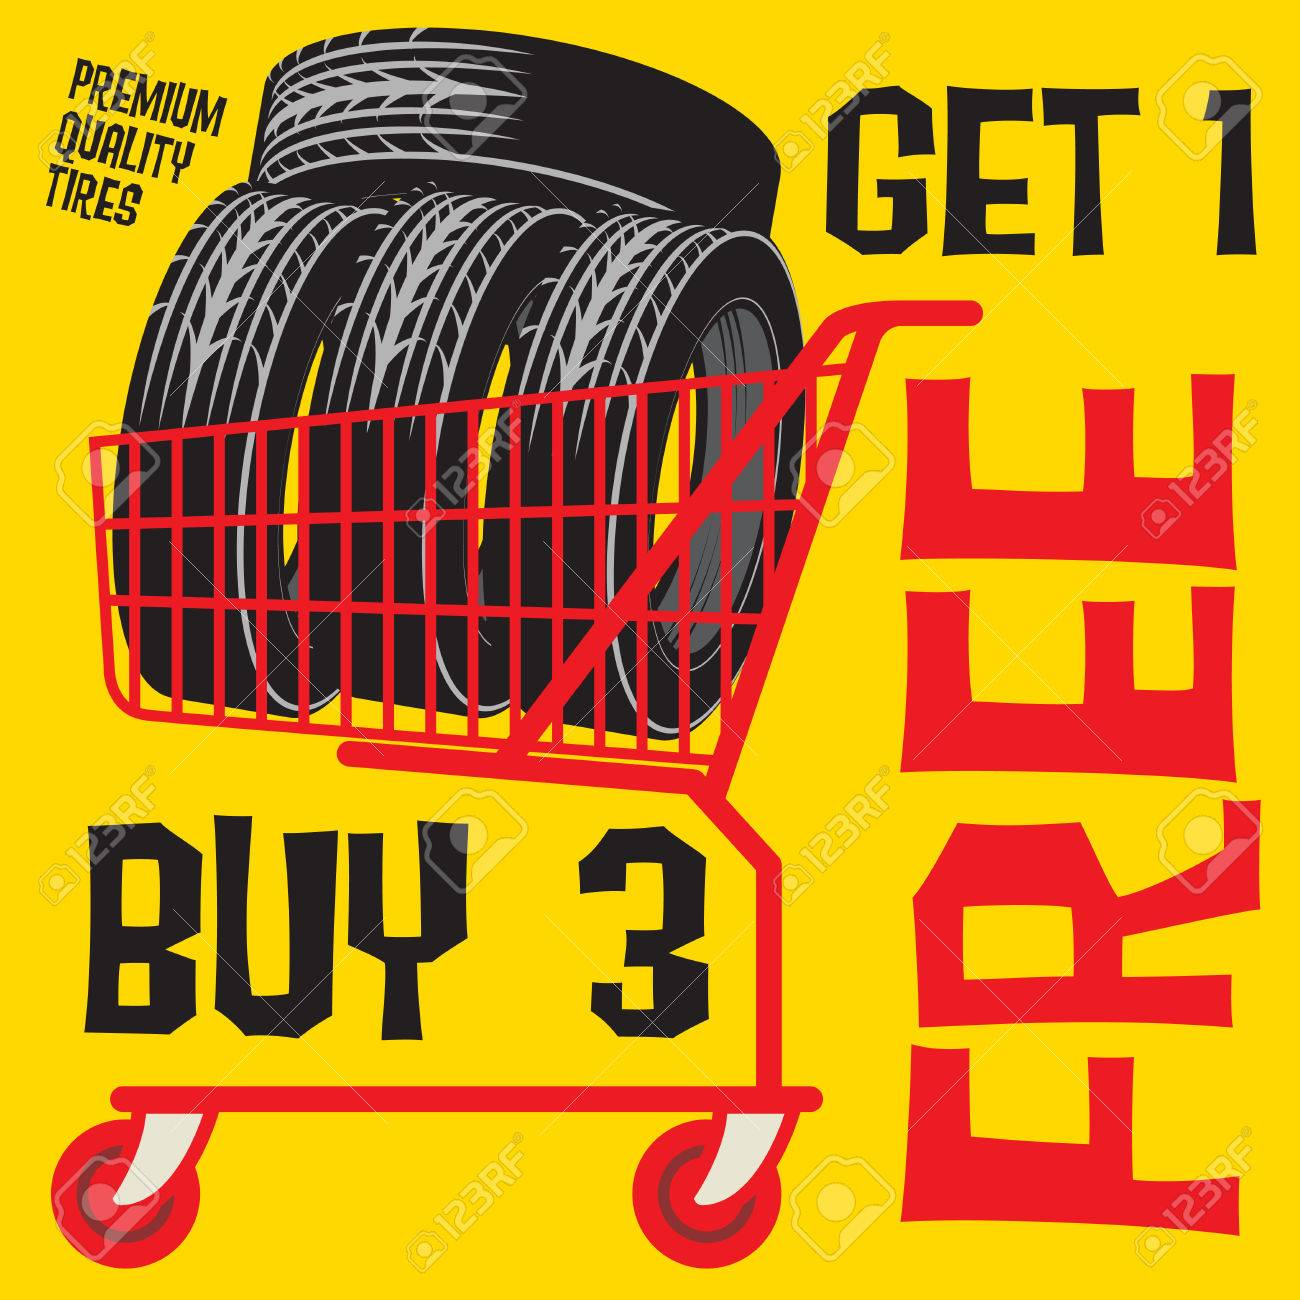 Buy 3 Get 1 Free Tires >> Tires Sale Poster With Tires In Shopping Chart And Text Buy 3